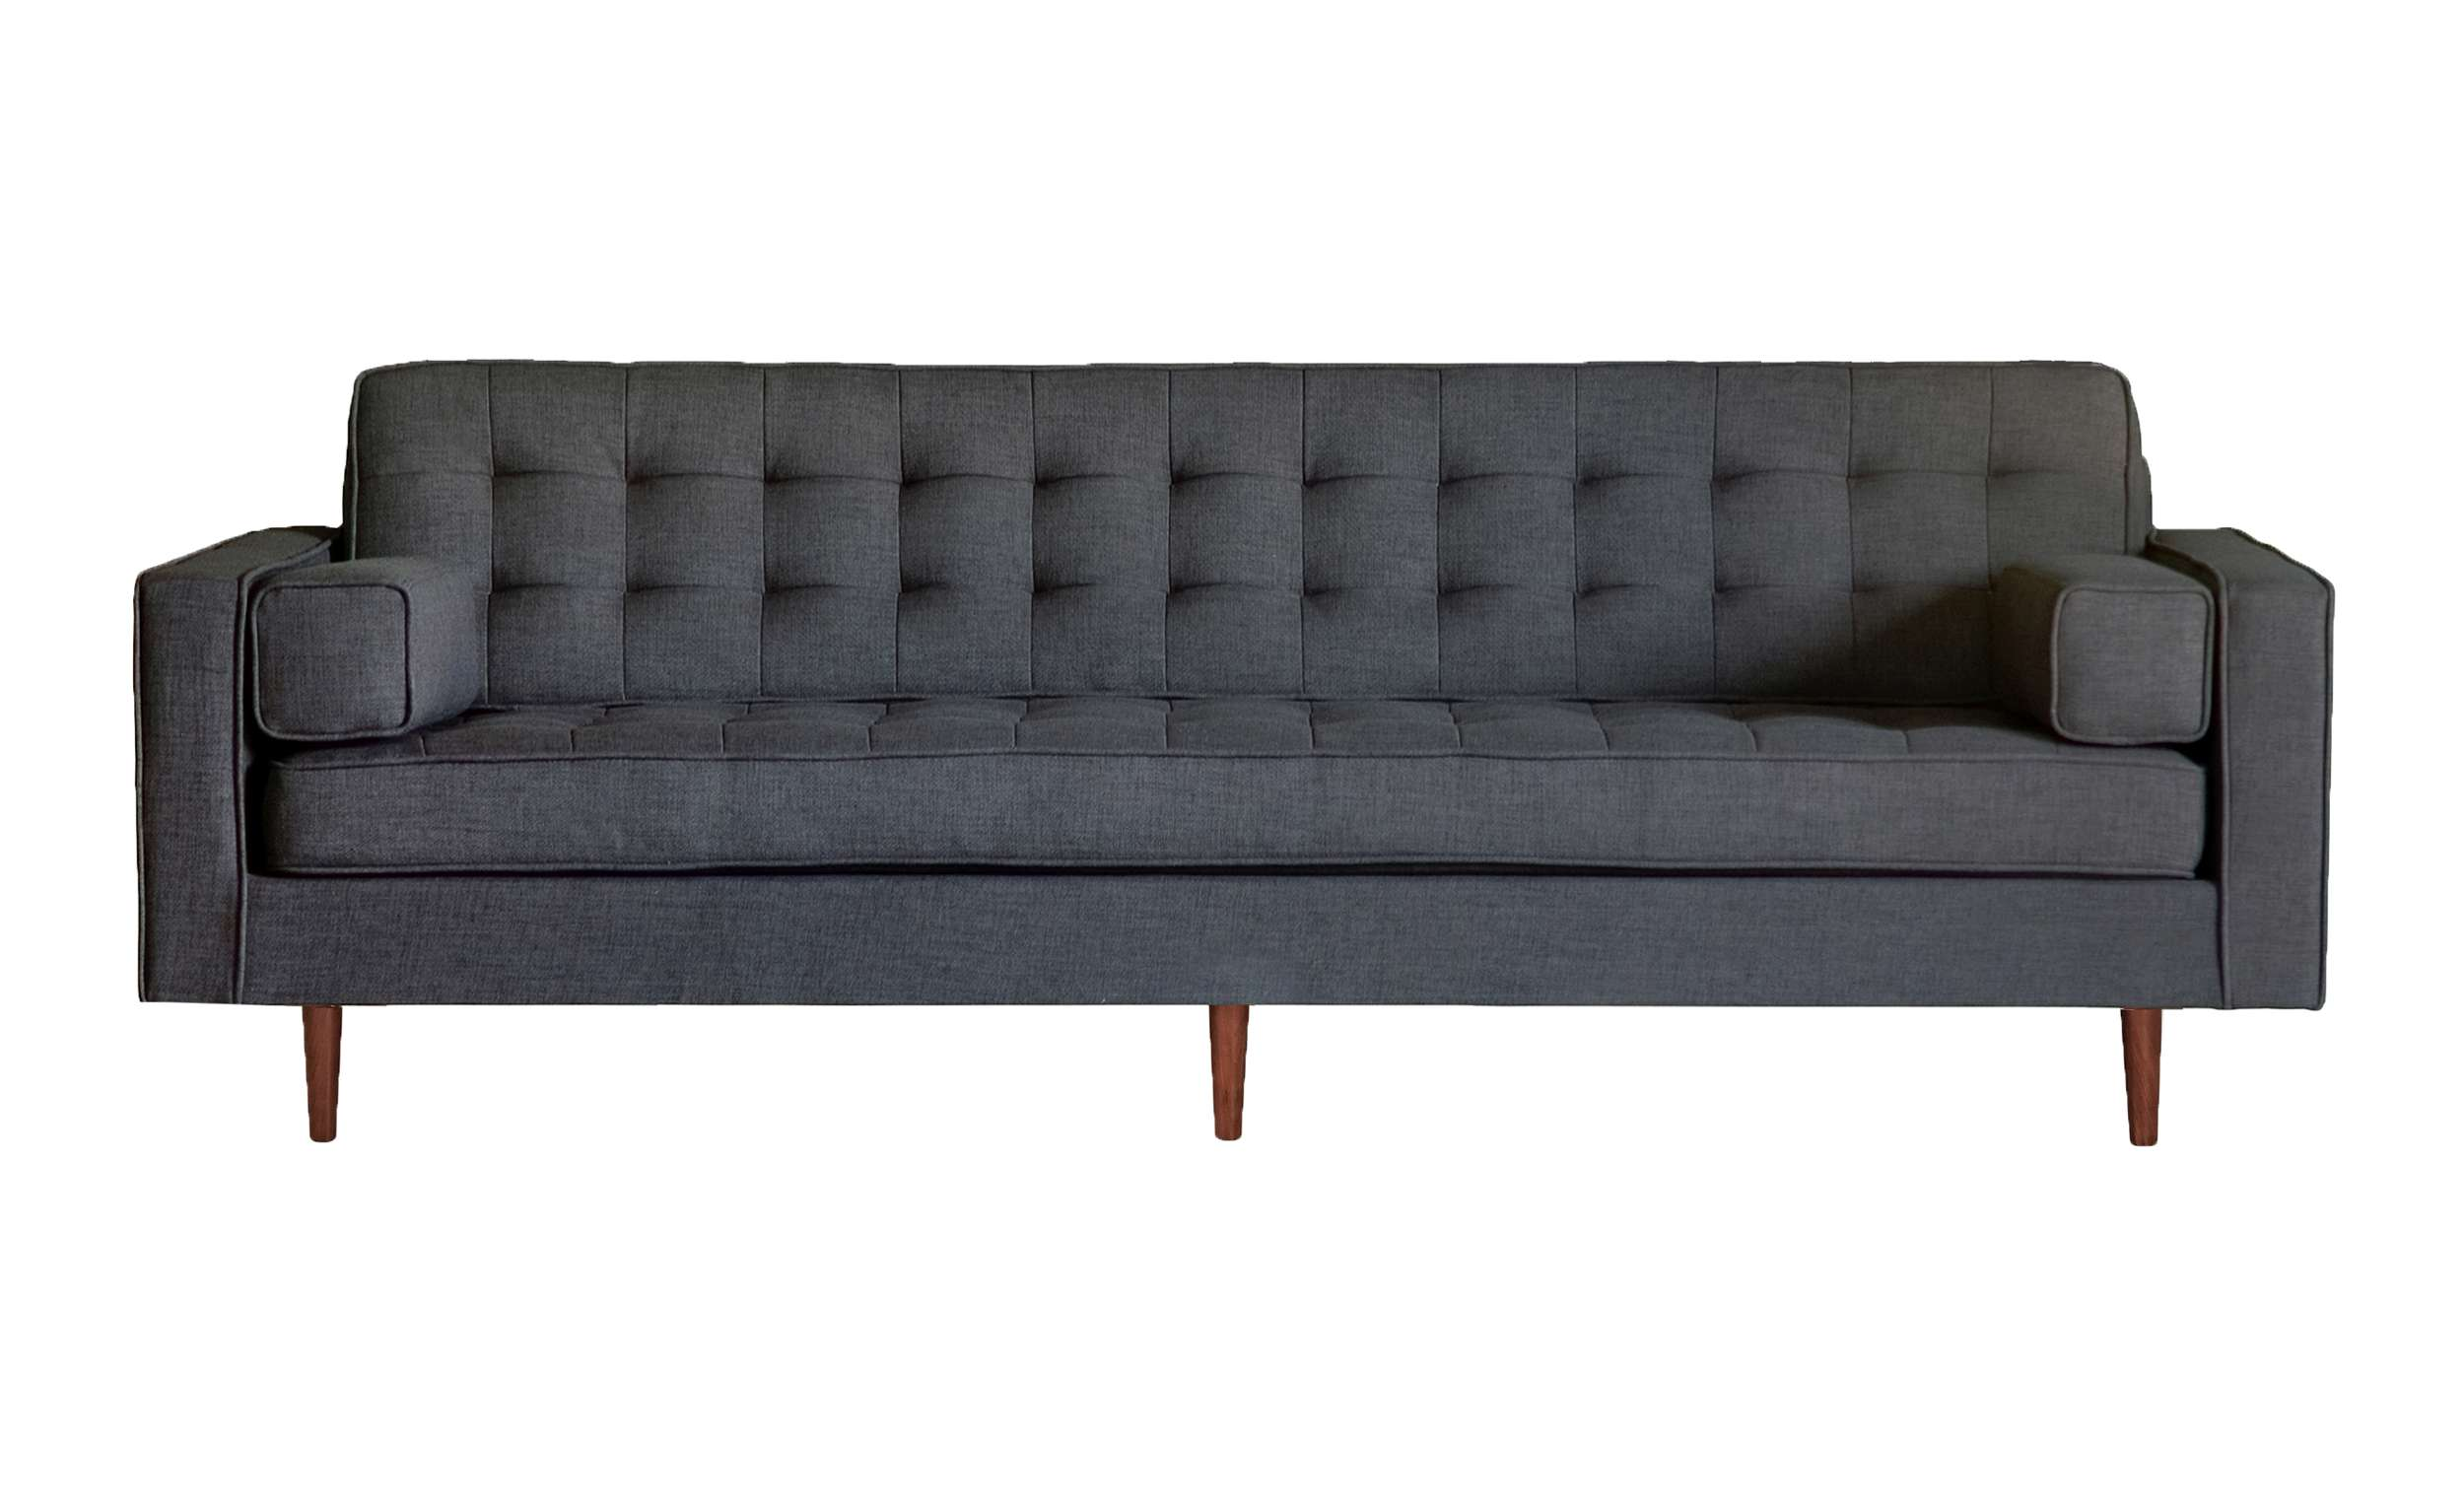 Astonishing Spencer 3 Seat Sofa By Gus Modern Smart Furniture Interior Design Ideas Truasarkarijobsexamcom